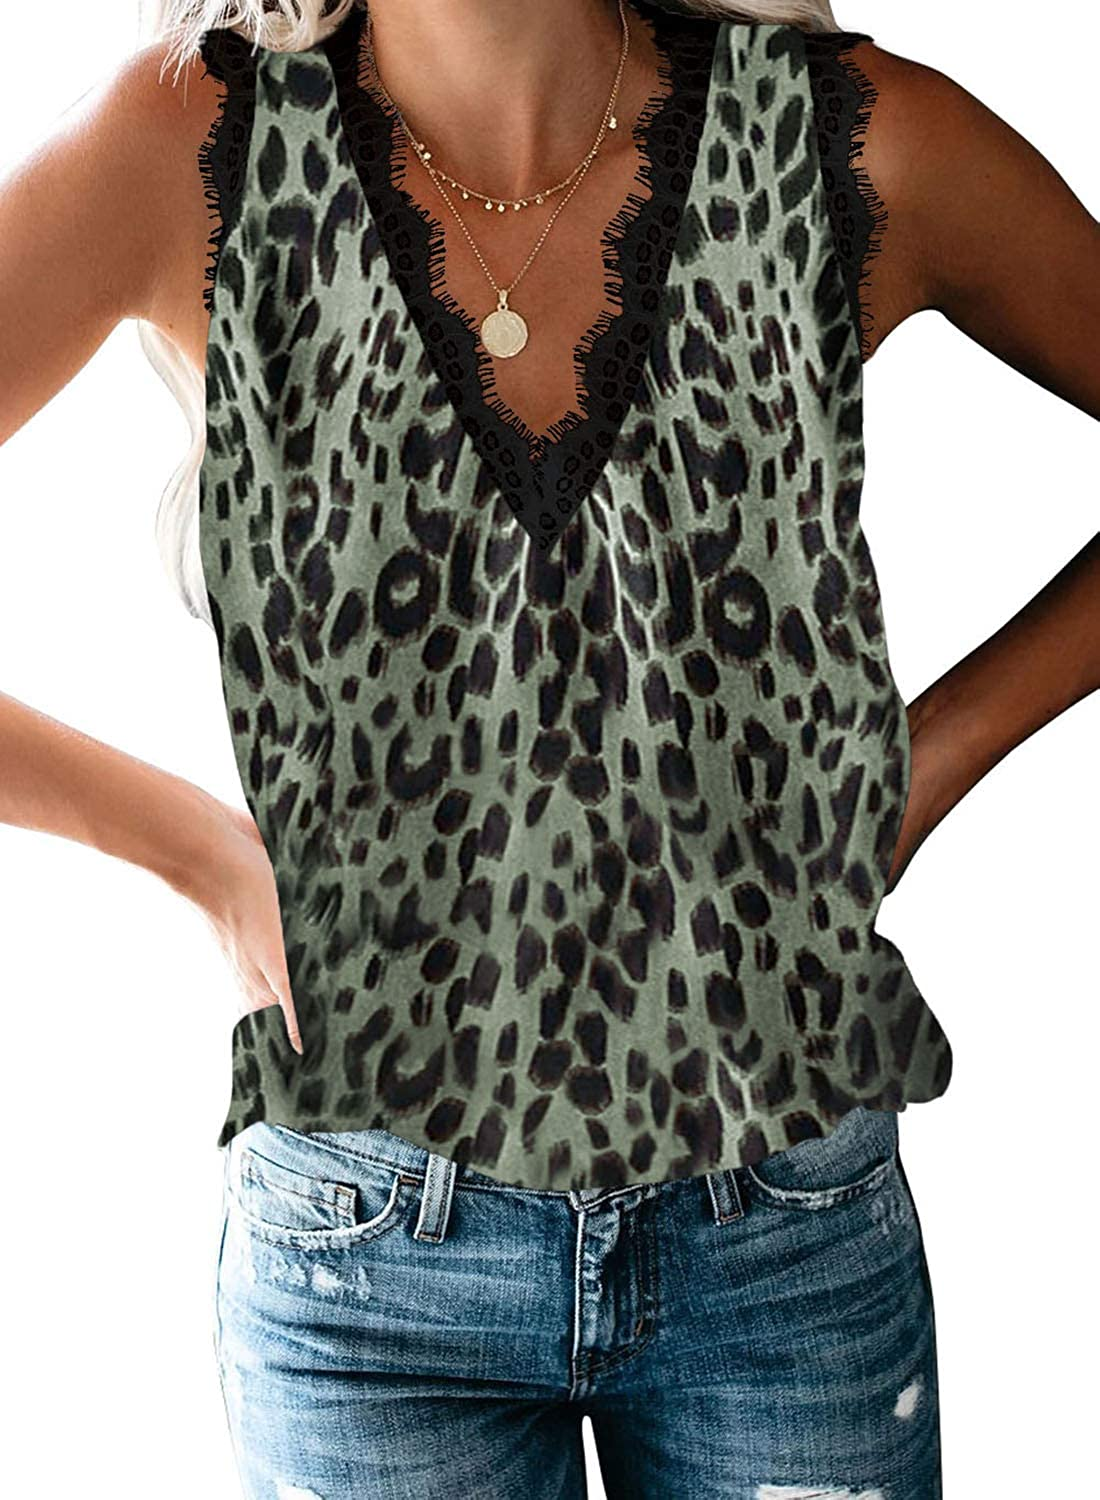 BLENCOT Women Ladies Sexy V Neck Casu Tank Trim All items free shipping Floral Tops Max 57% OFF Lace